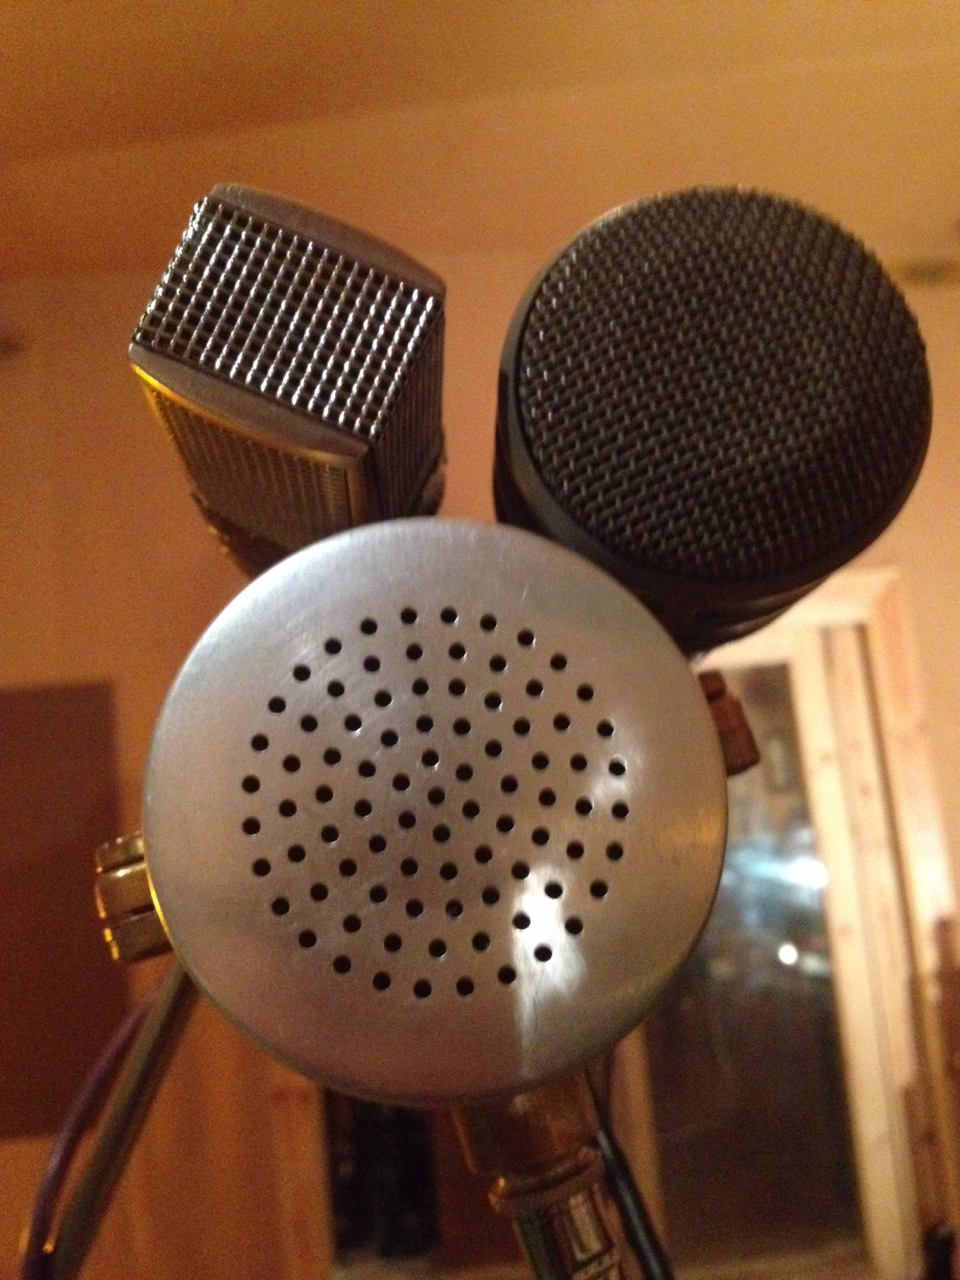 Sennheiser 441 + Electrovox re20 + wasaphone = killer 50s vocal sound for the treetop flyers